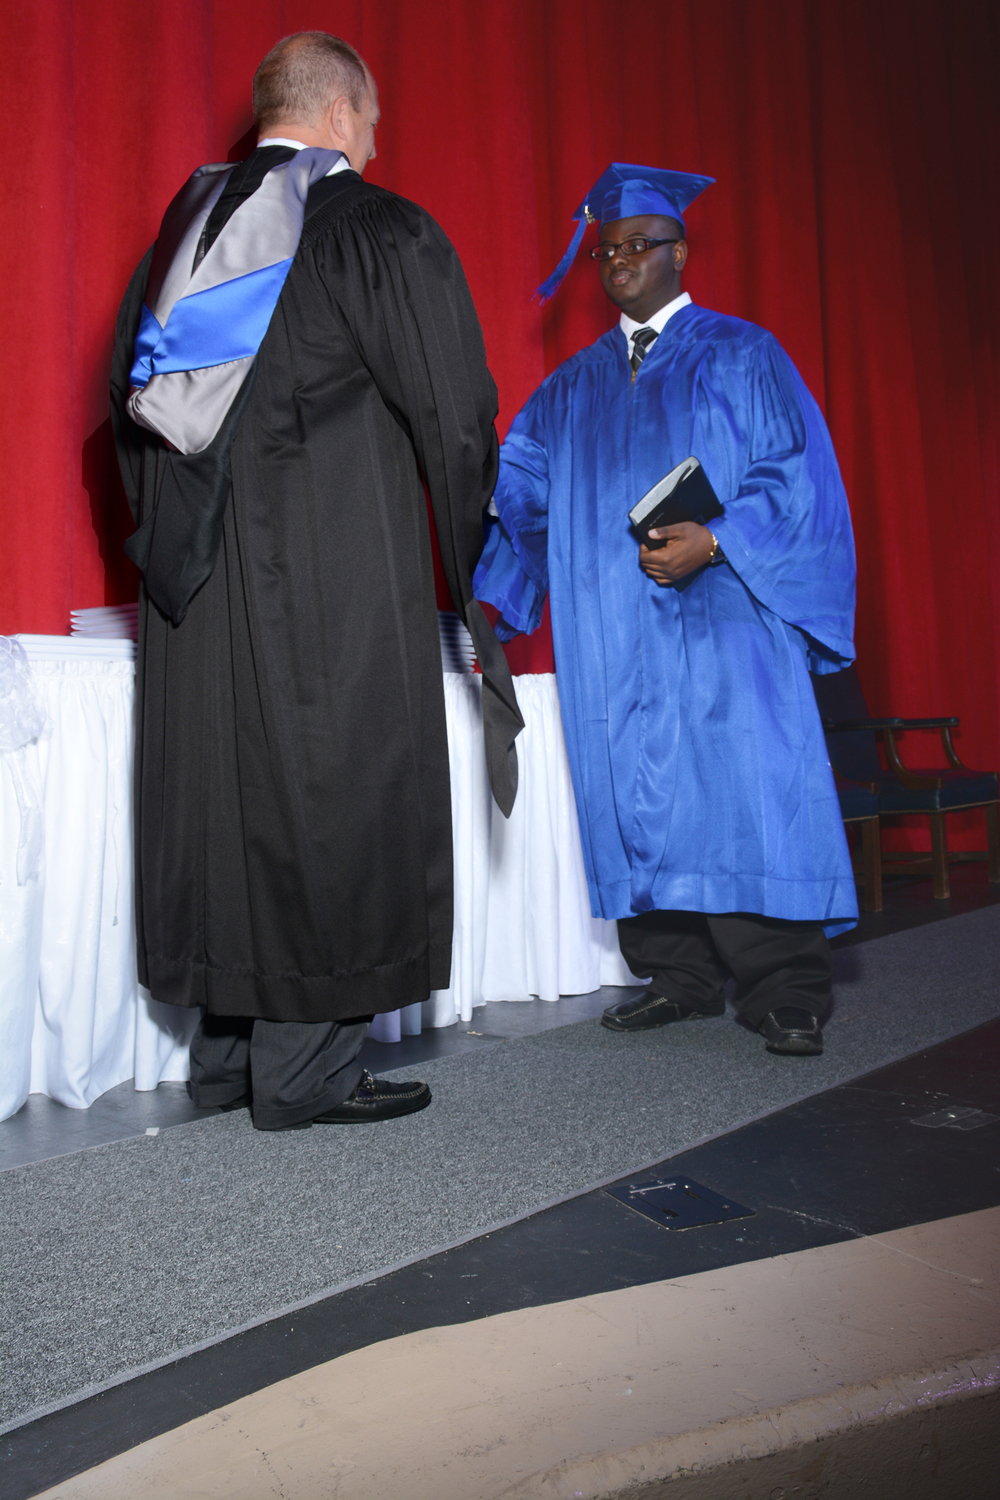 May16 GraduationPhotos116.jpg